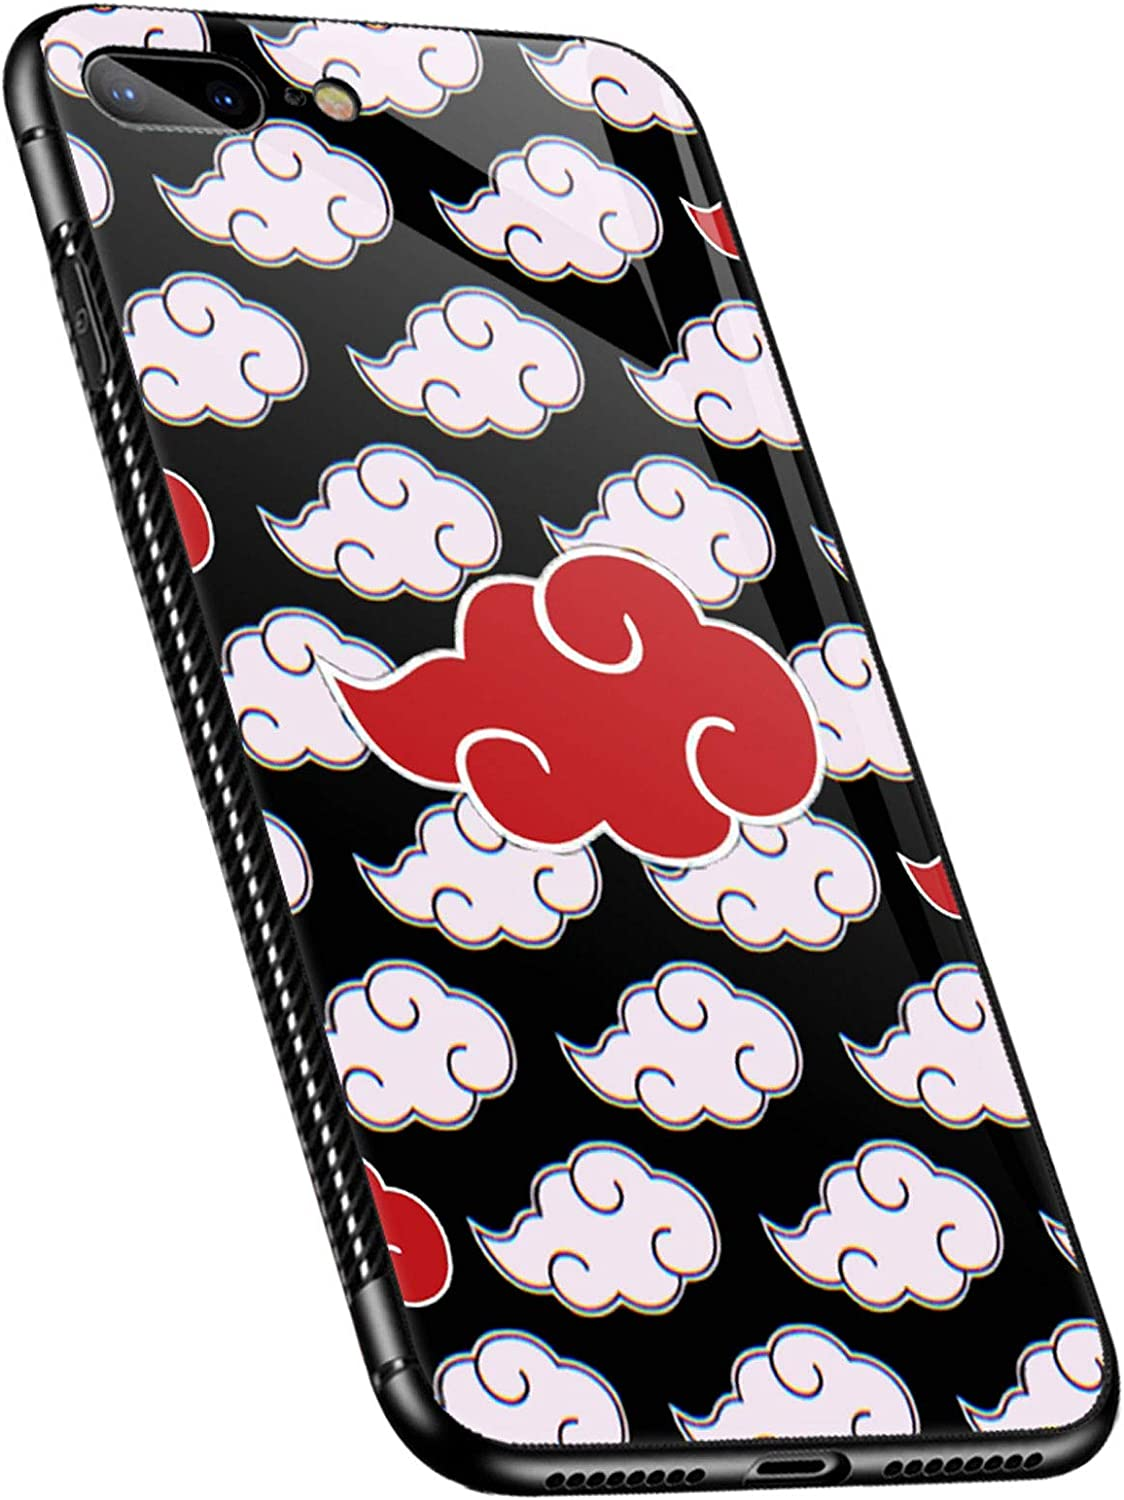 iPhone 8 Plus Case,Red and White Clouds Pattern iPhone 7 Plus Cases for Girls Women,Ultra Protection ShockproofSoft Silicone TPU Non-Slip Back Compatible with Apple iPhone 8 Plus/7 Plus